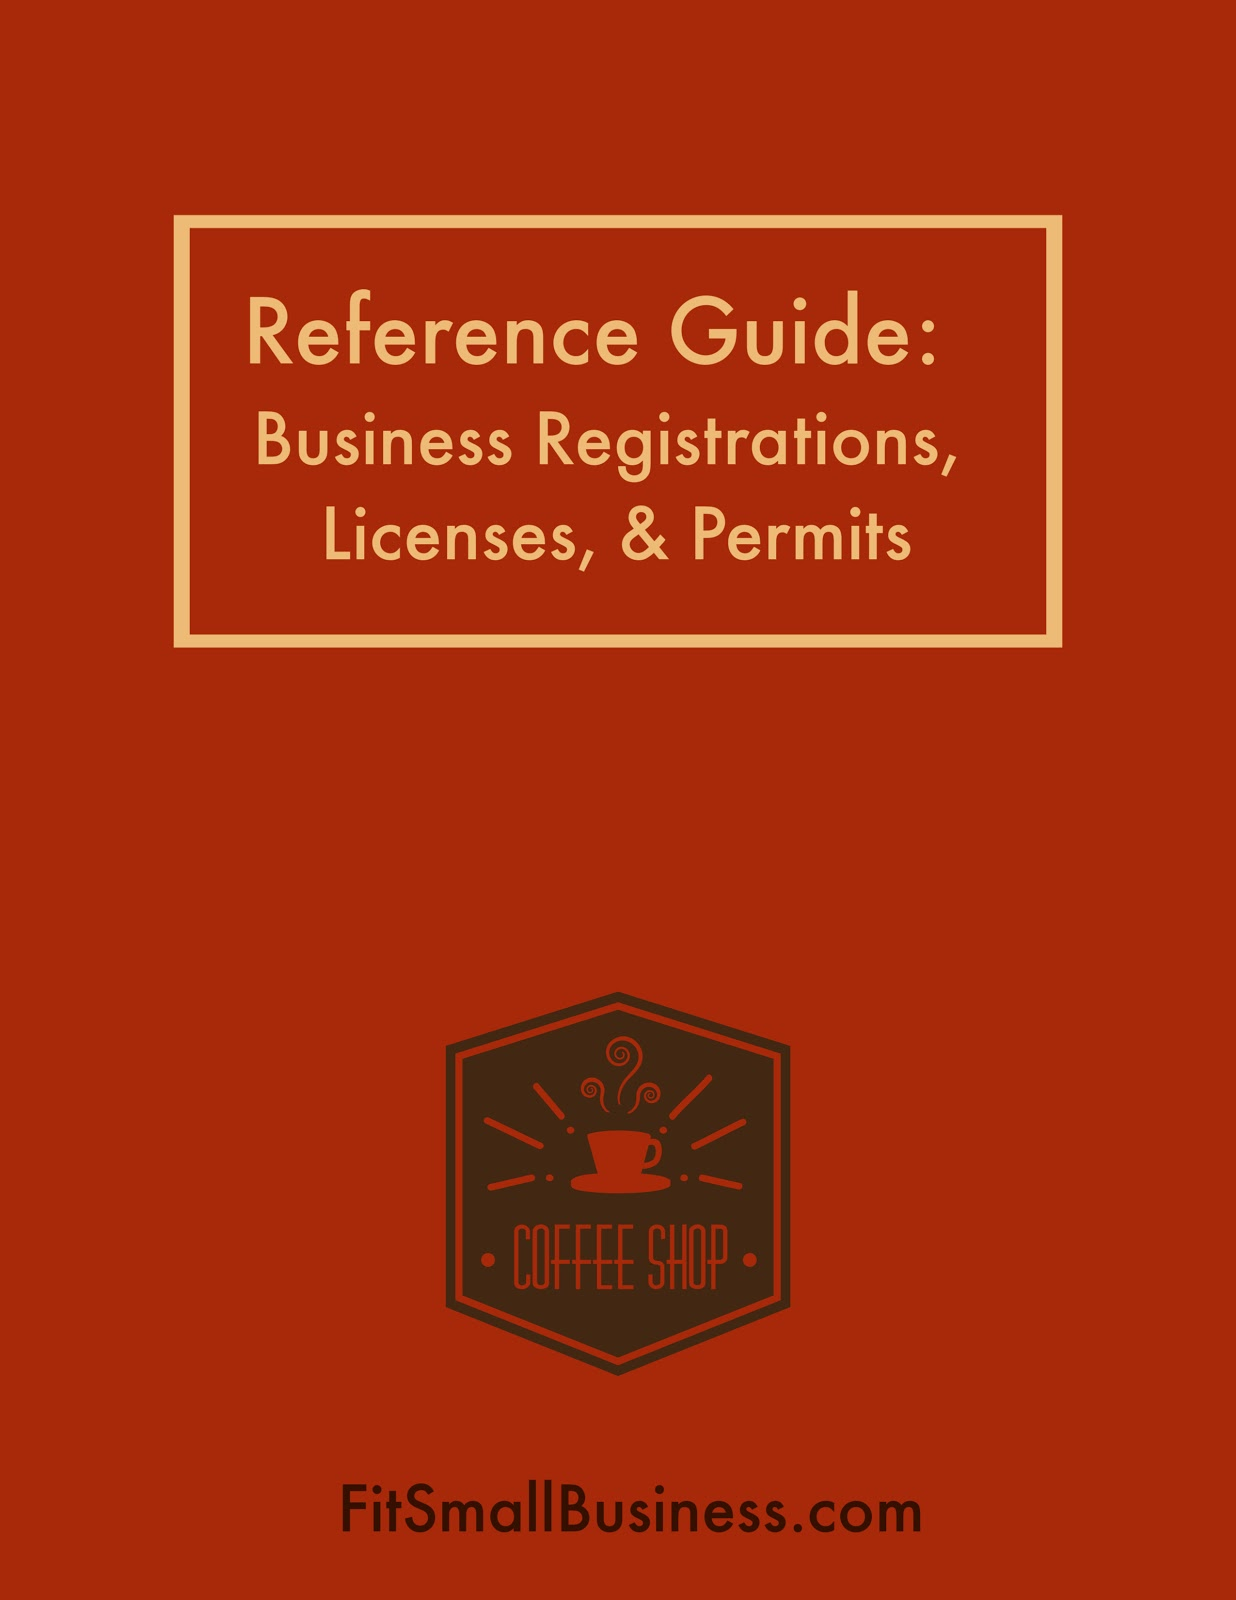 Reference Guide: Business Registrations, License, & Permits